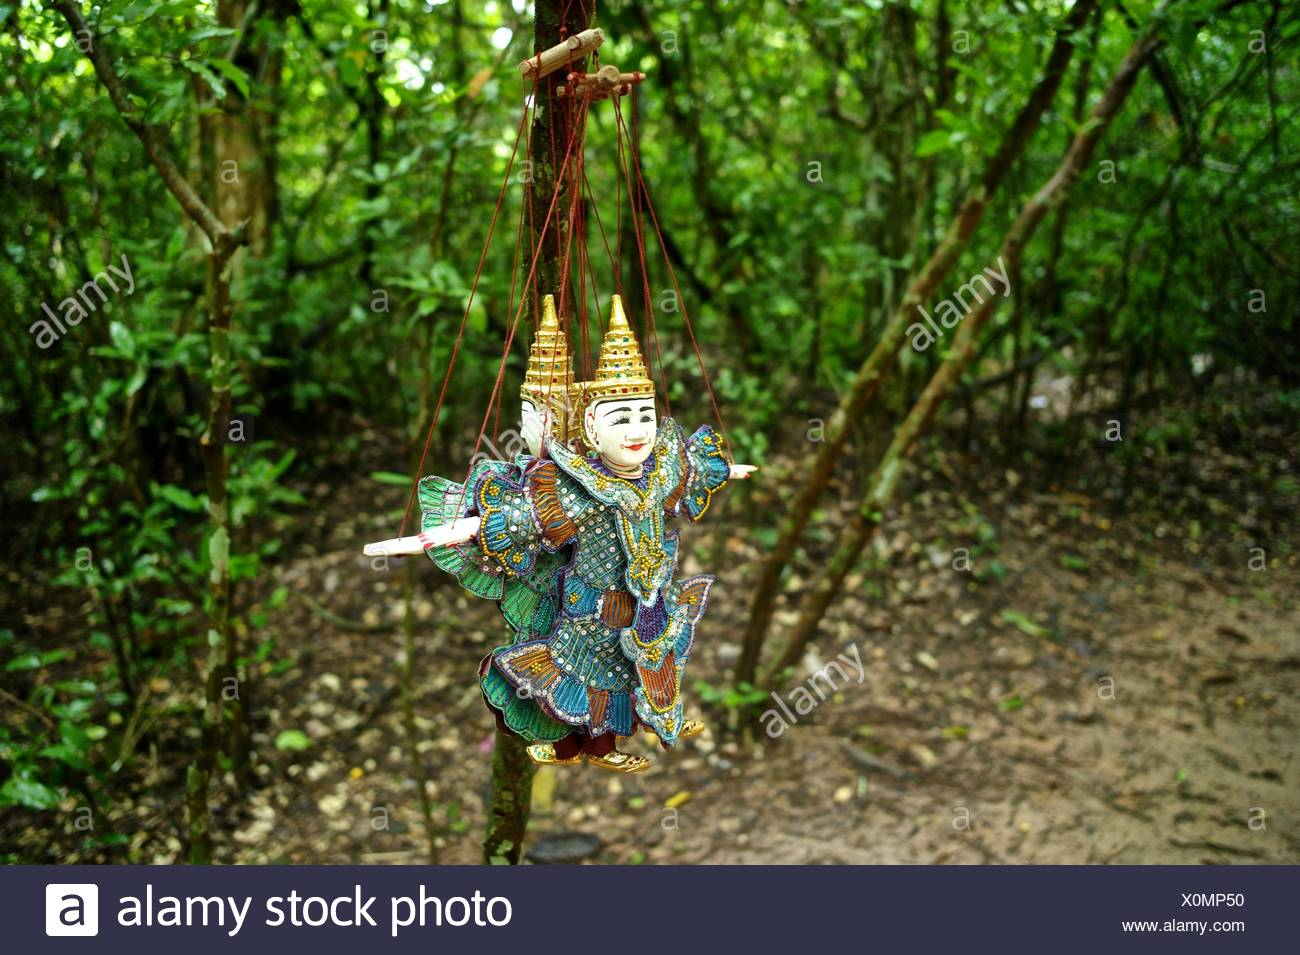 Traditional Khmer puppets at the entrance of the ancient ruins of Ta Prohm Temple. - Stock Image